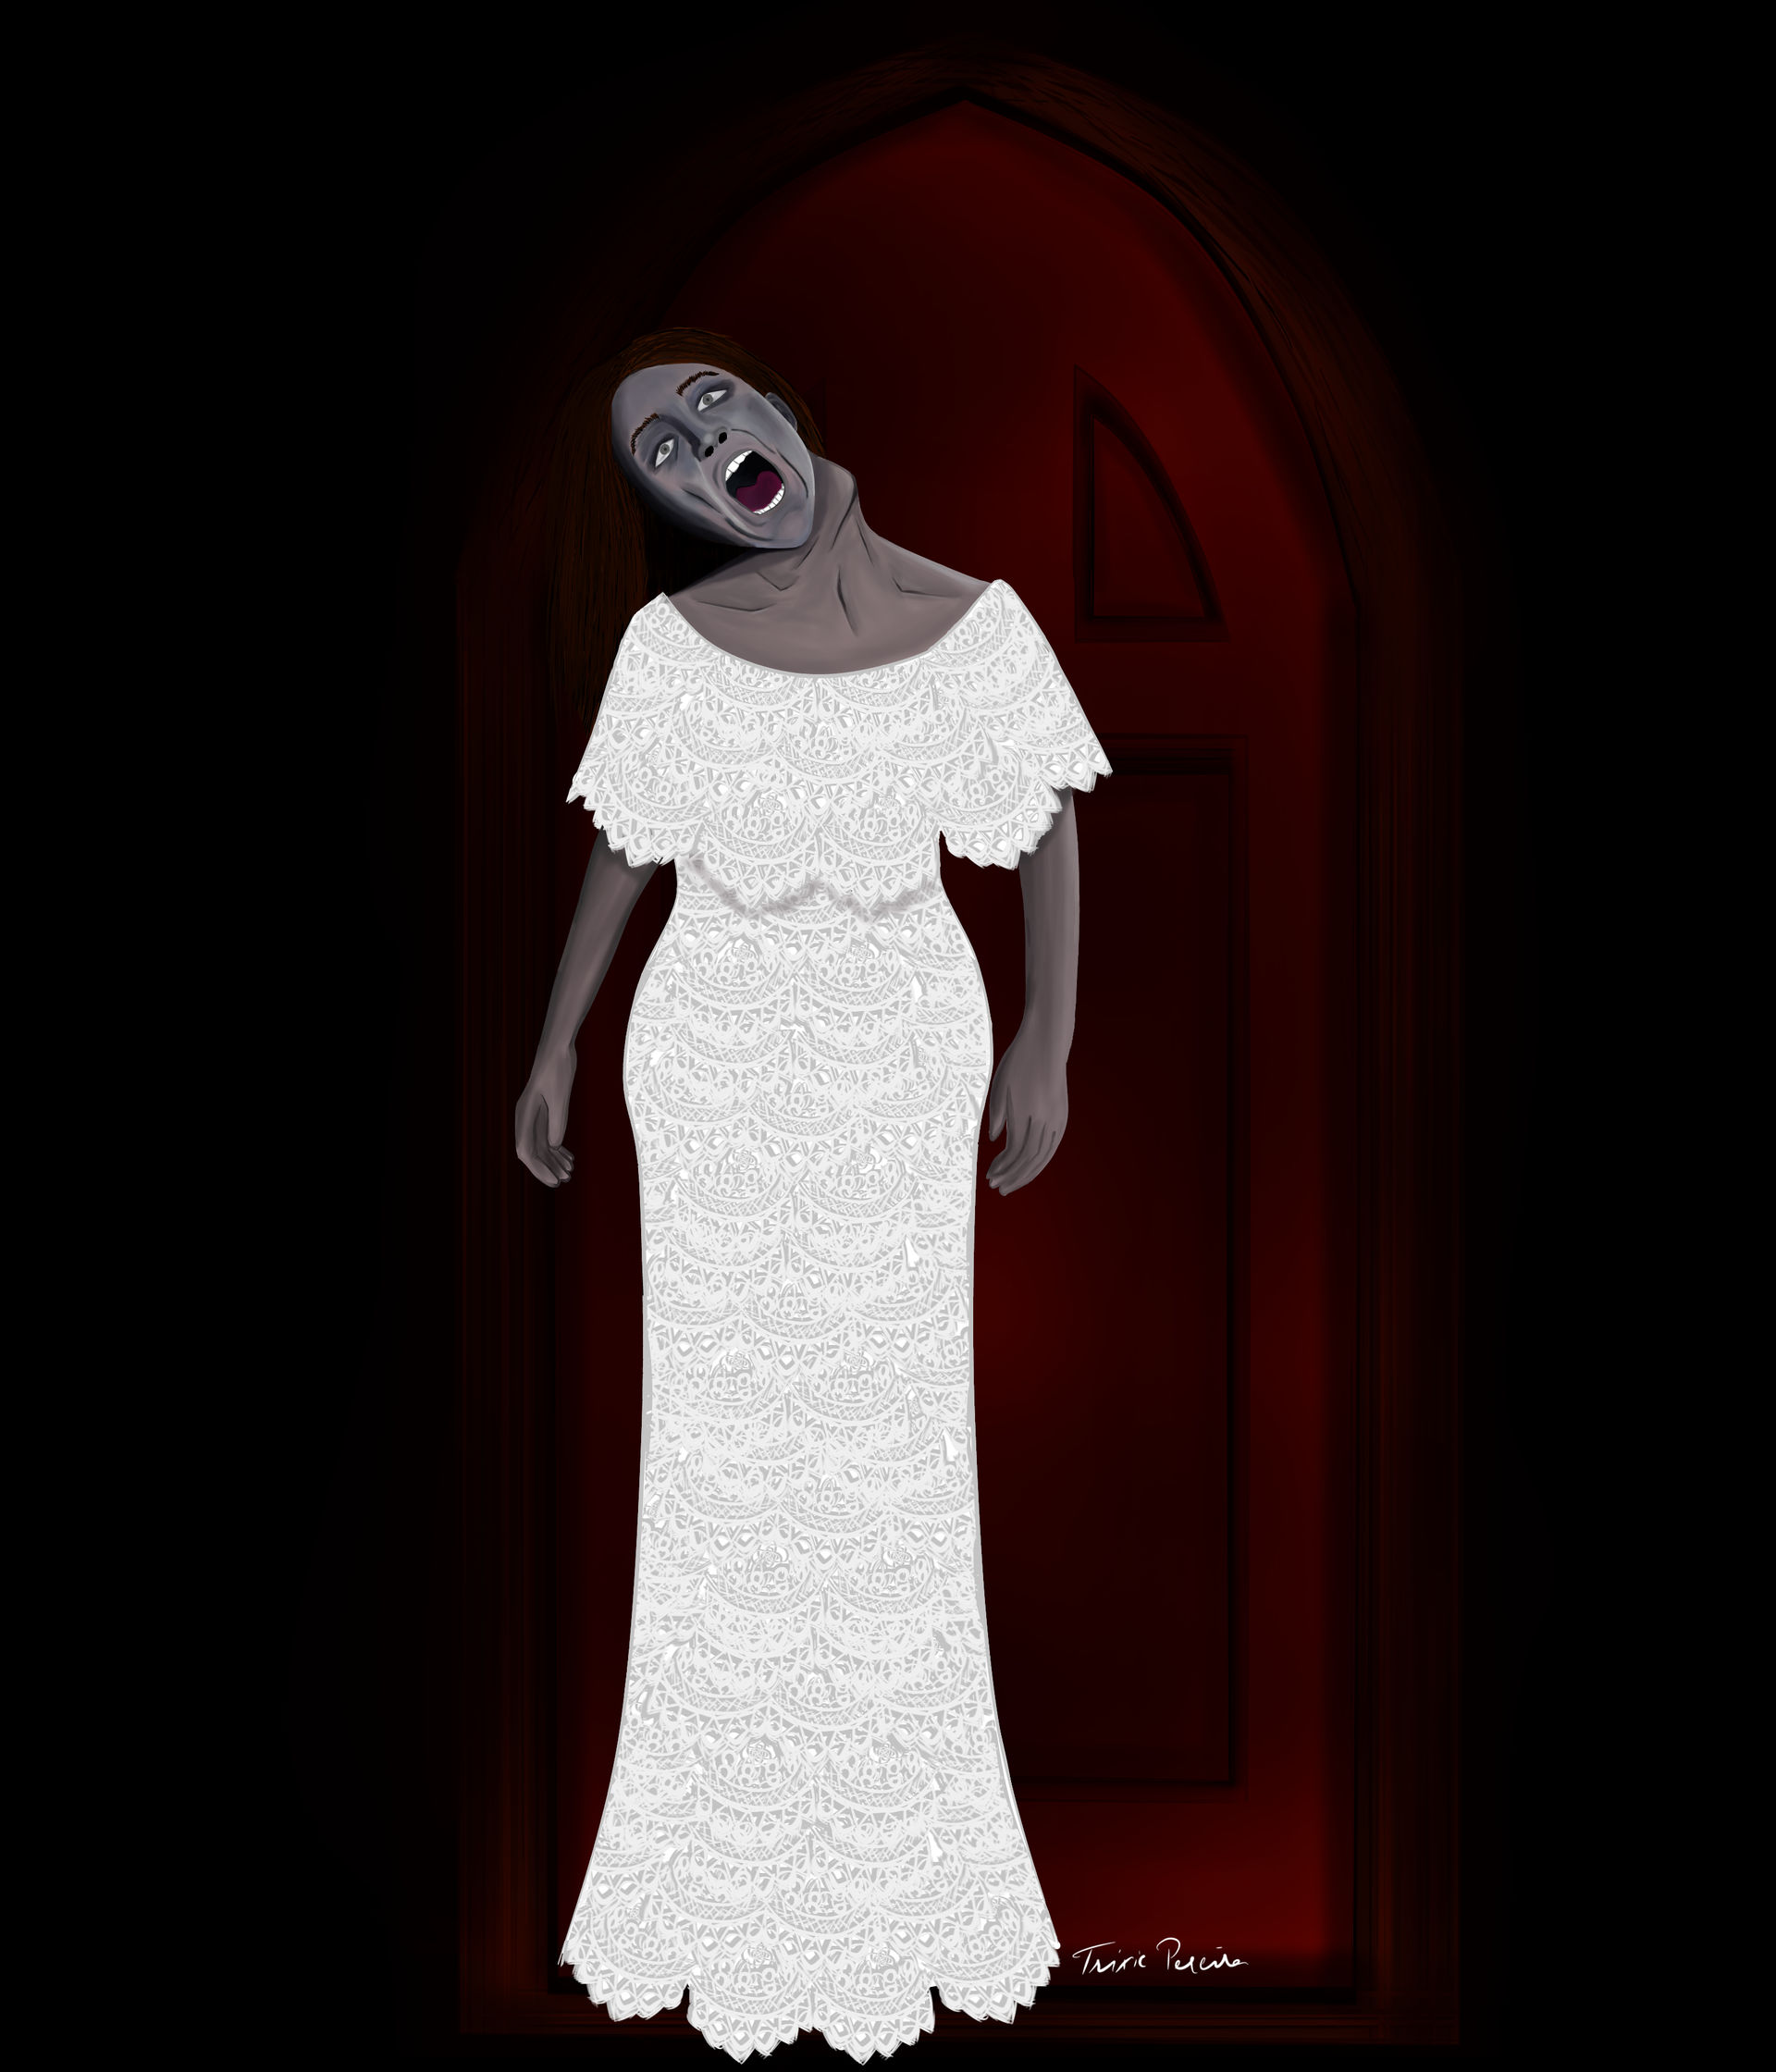 Bent Neck Lady Haunting Of Hill House By Pack69alpha On Deviantart